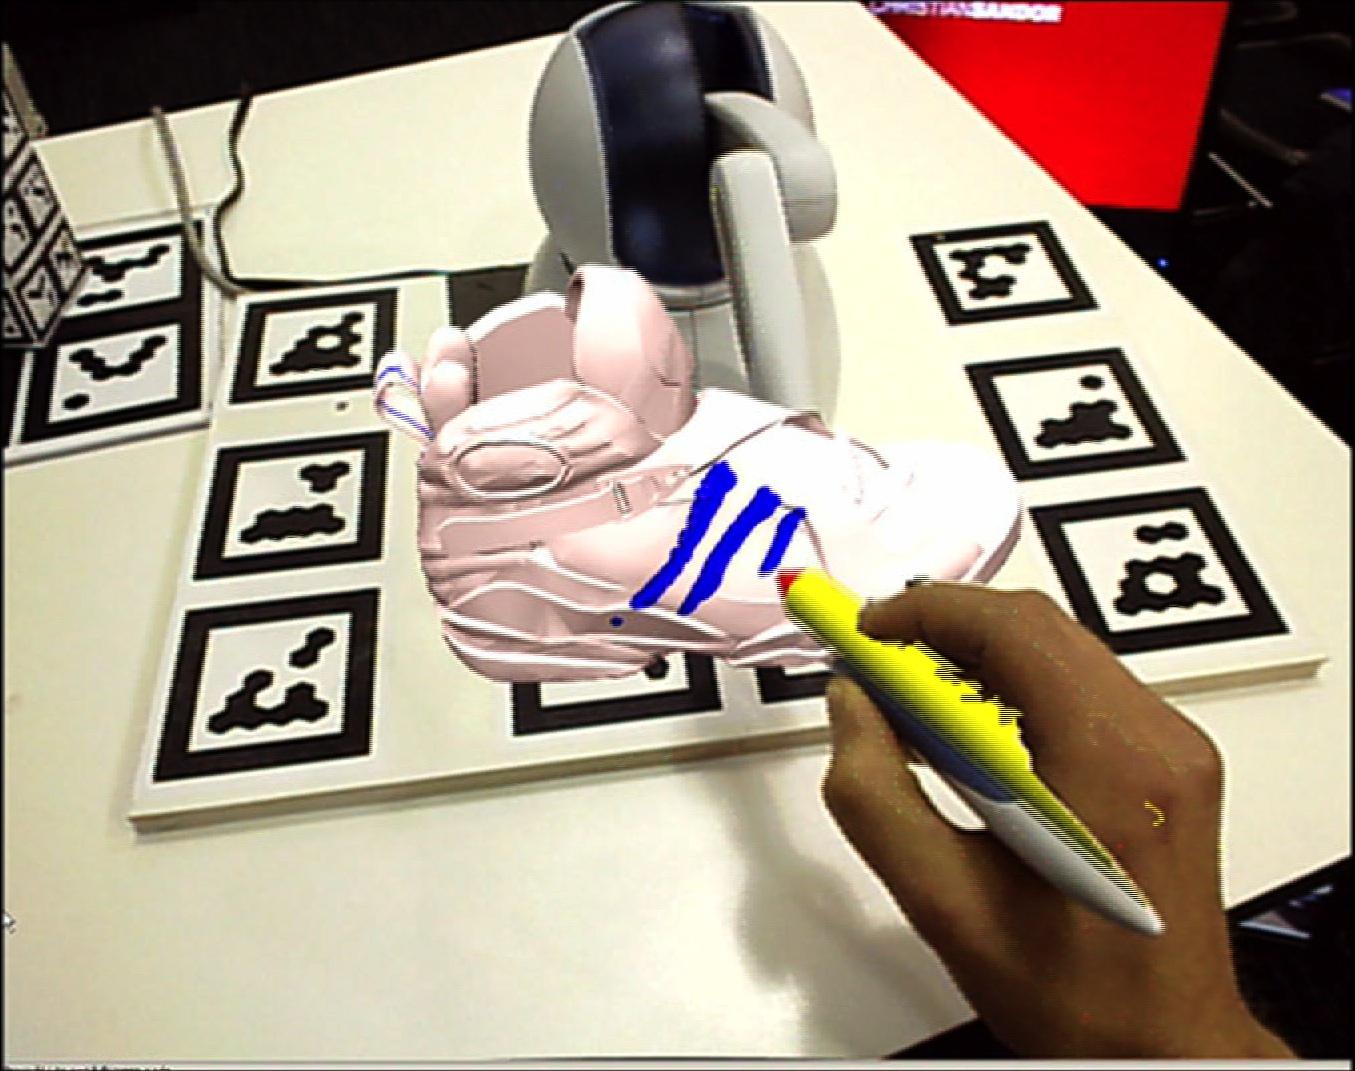 HARP: A Framework for Visuo-Haptic Augmented Reality